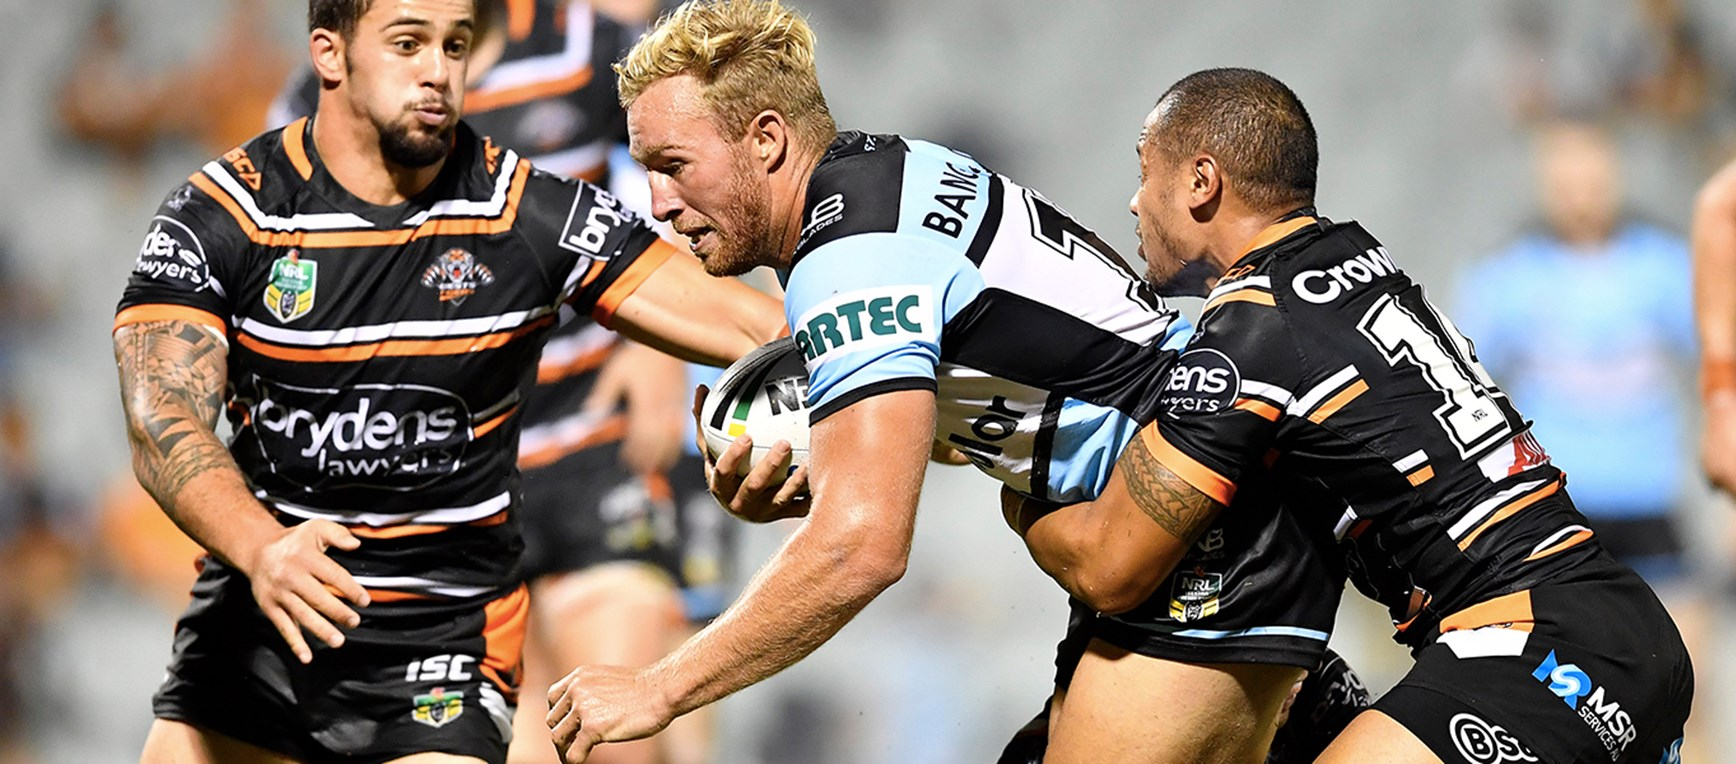 In Pictures: Sharks v Tigers